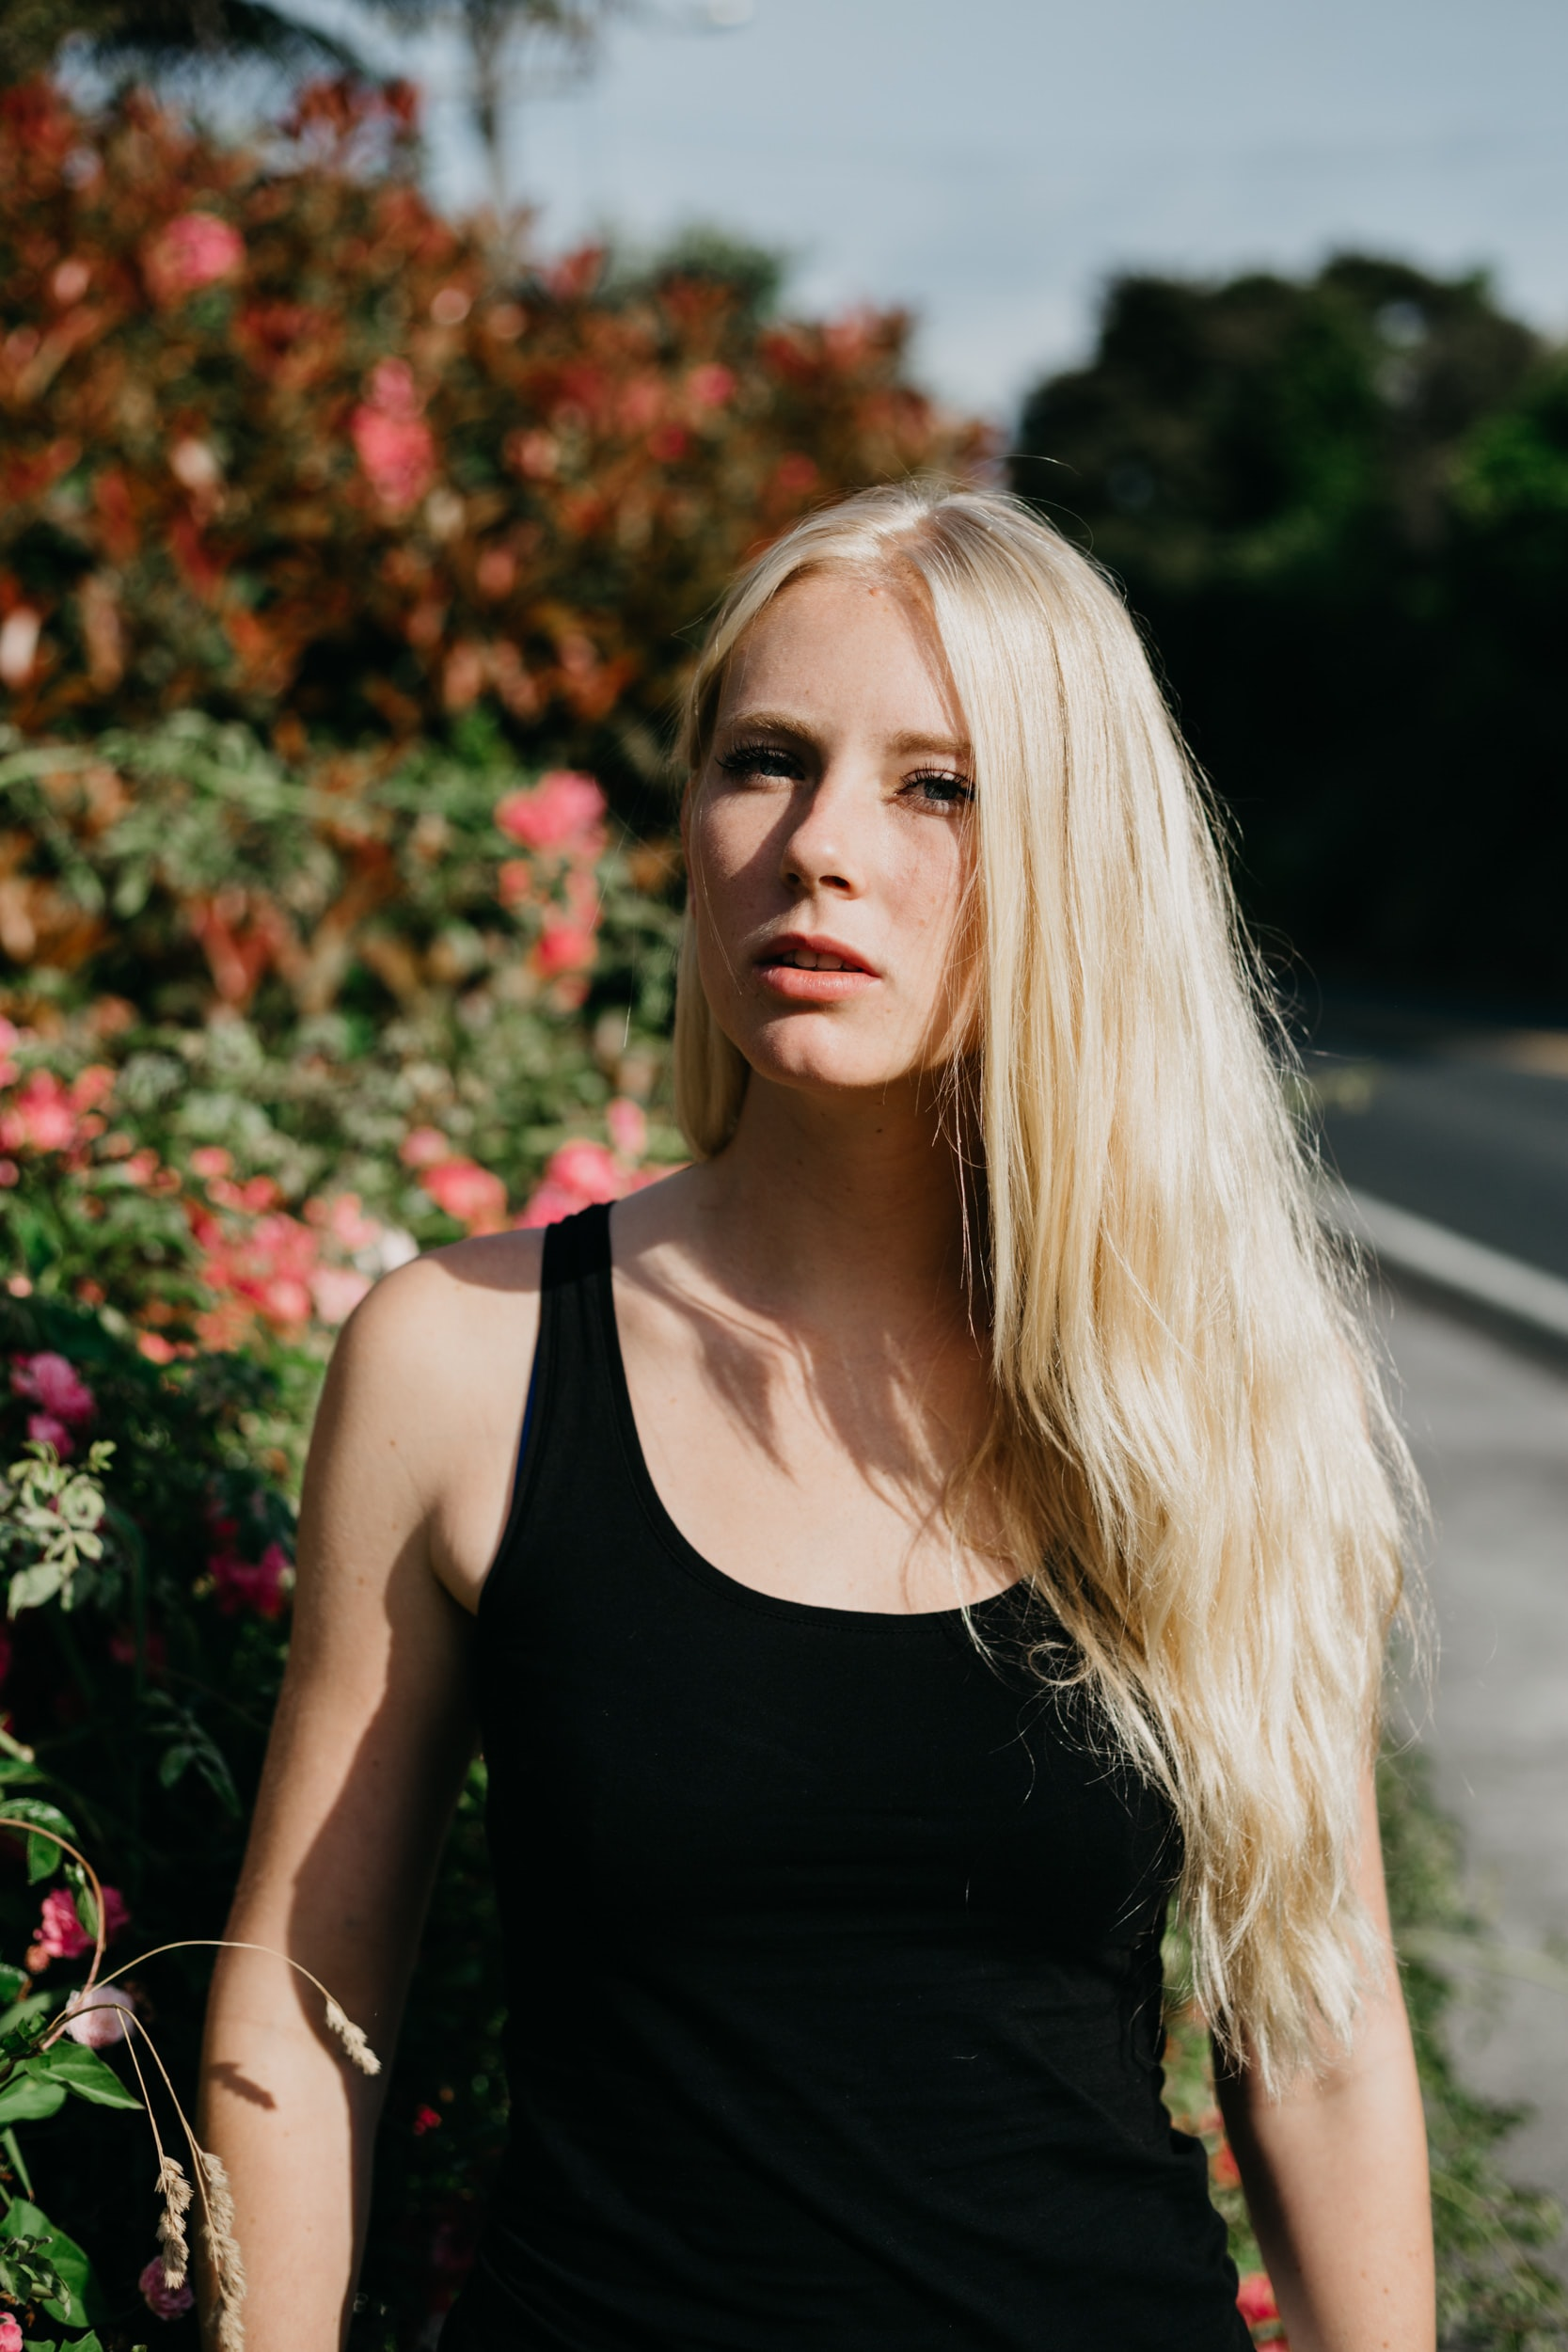 woman wearing black tank top in shallow focus photography